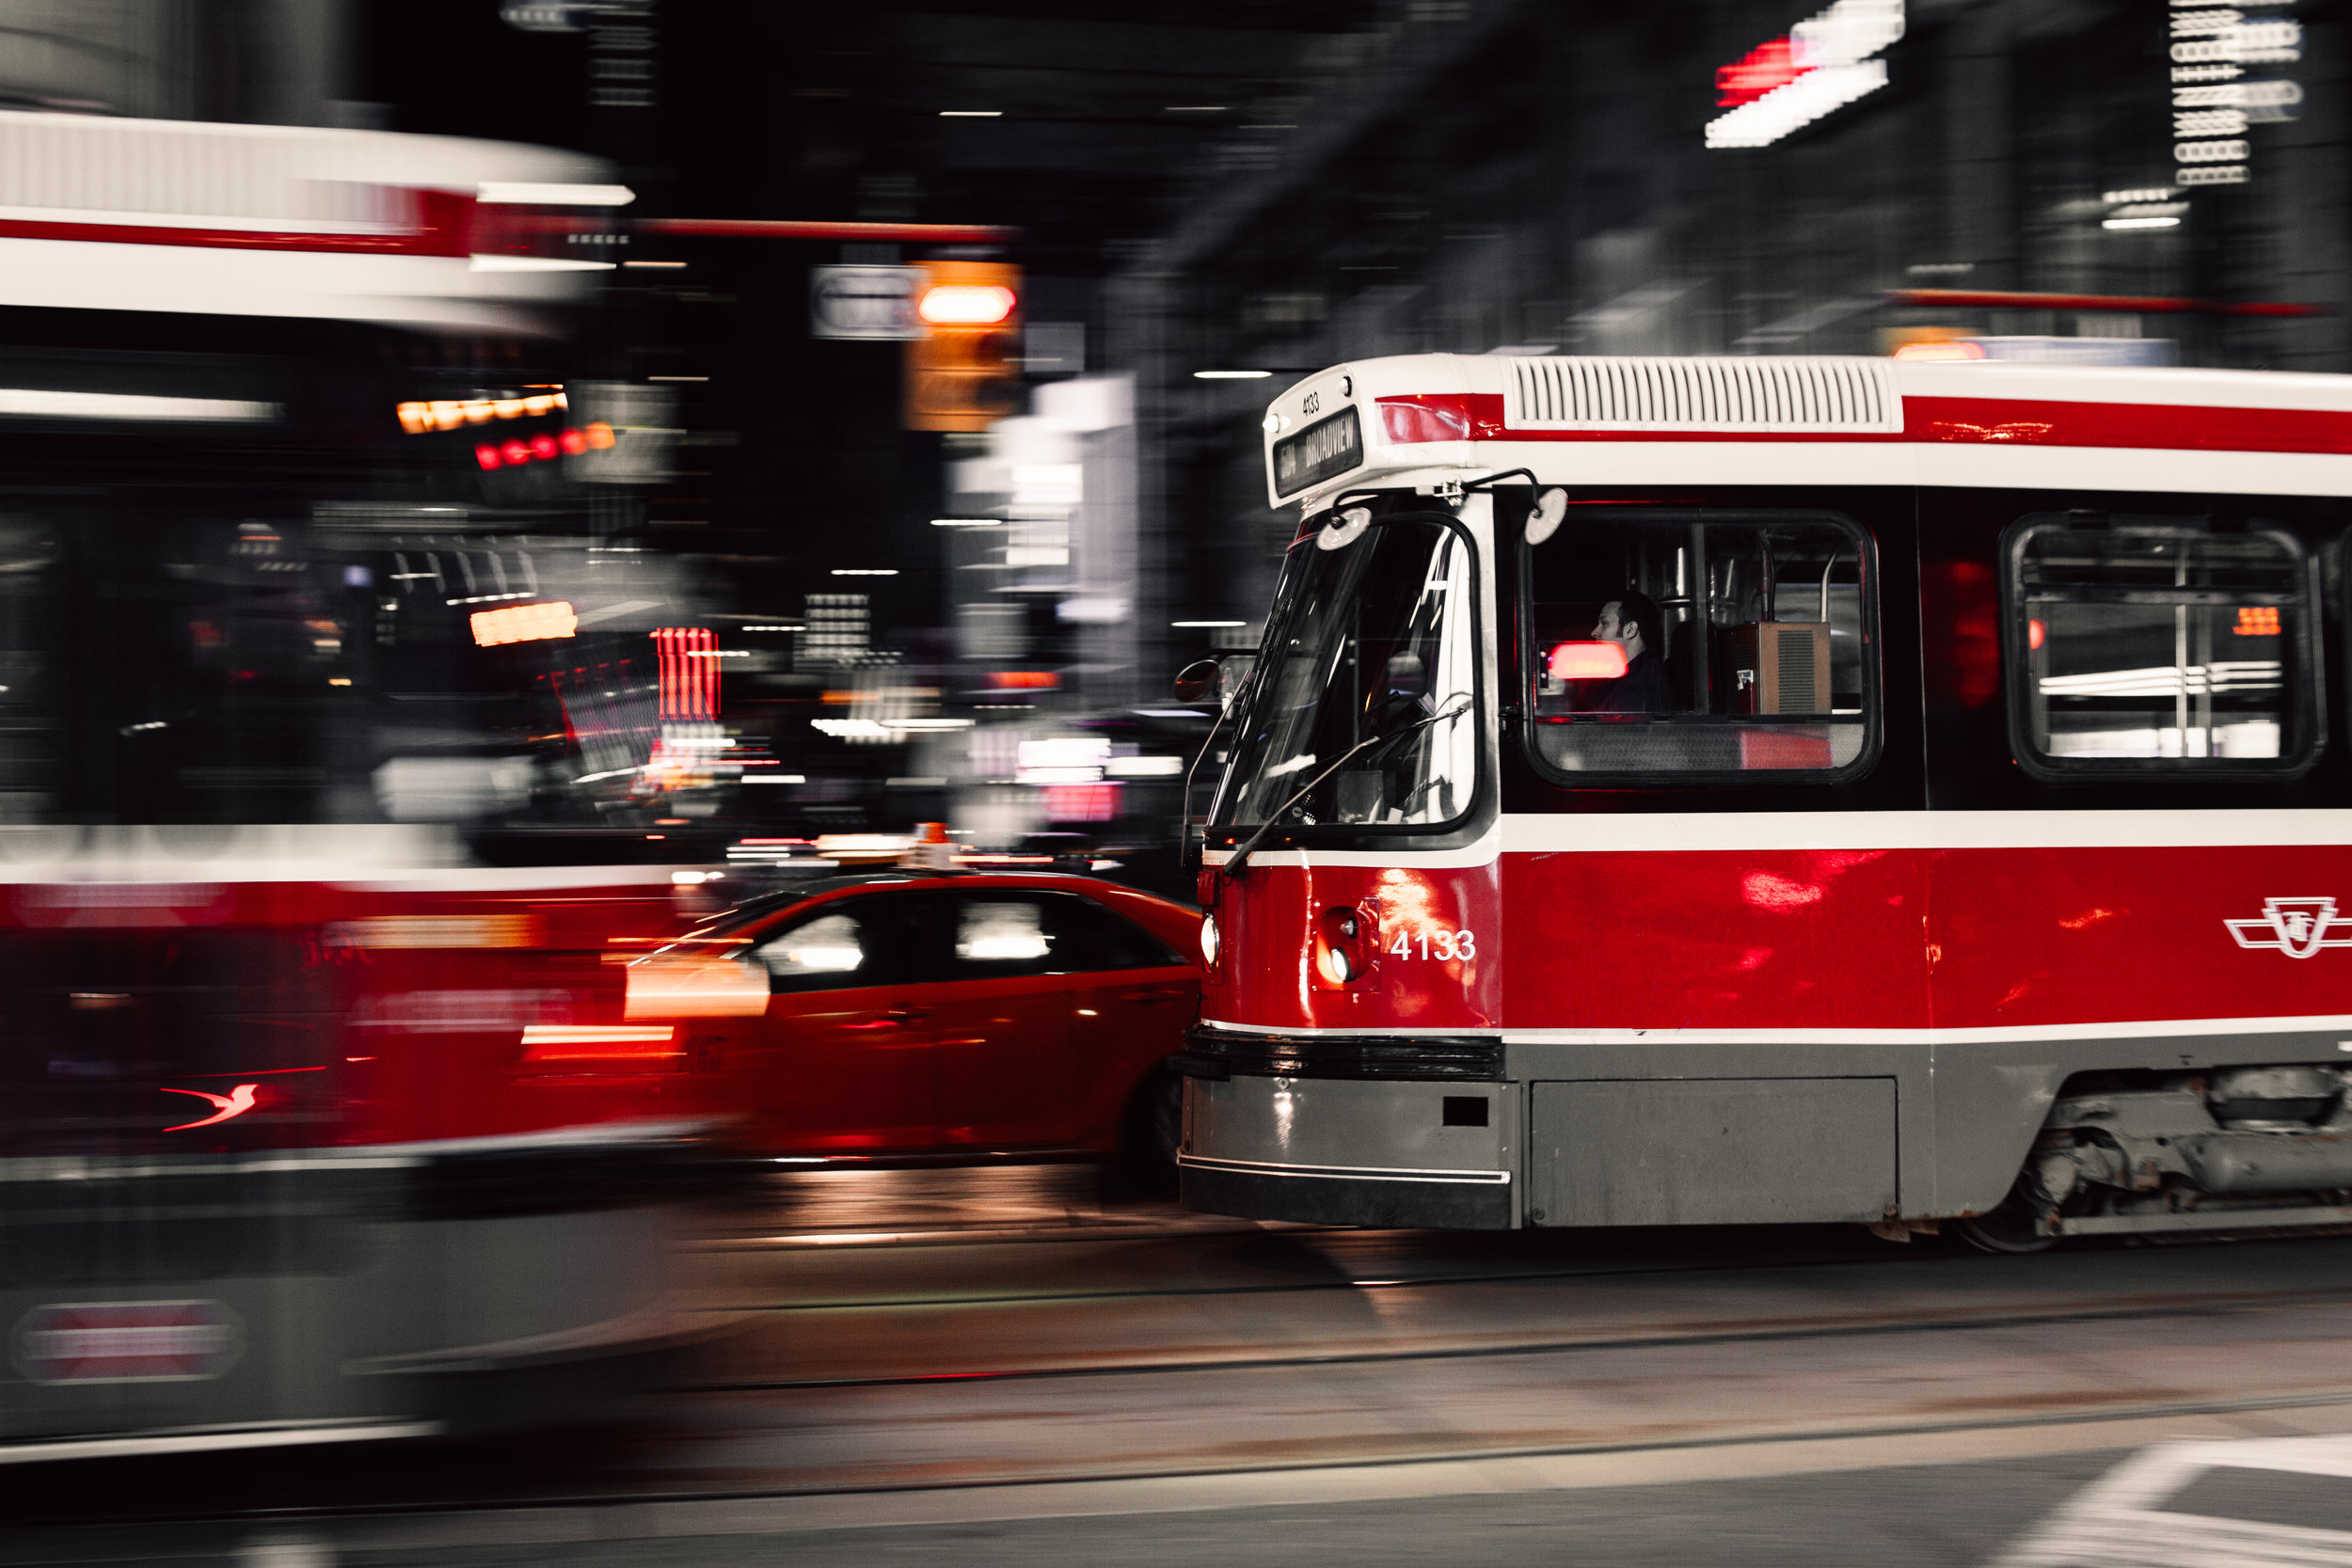 Photo of streetcars in Toronto, nighttime. Photo courtesy of Unsplash